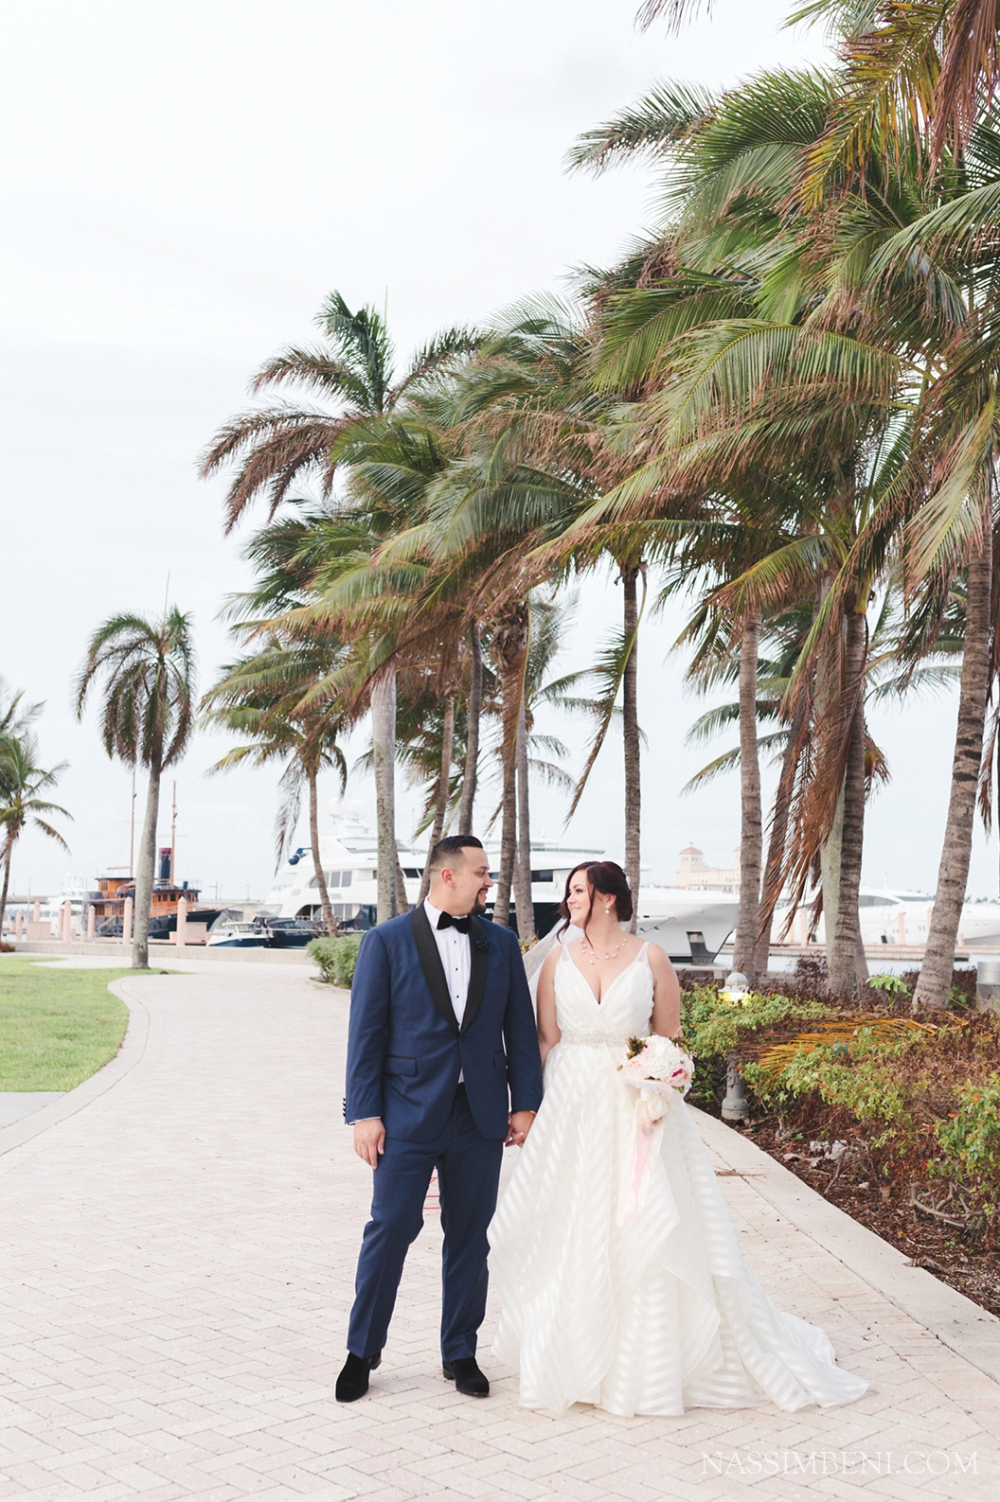 West-Palm-Beach-Pavilion-wedding-photos-nassimbeni-photography-wedding-photo-and-video-38